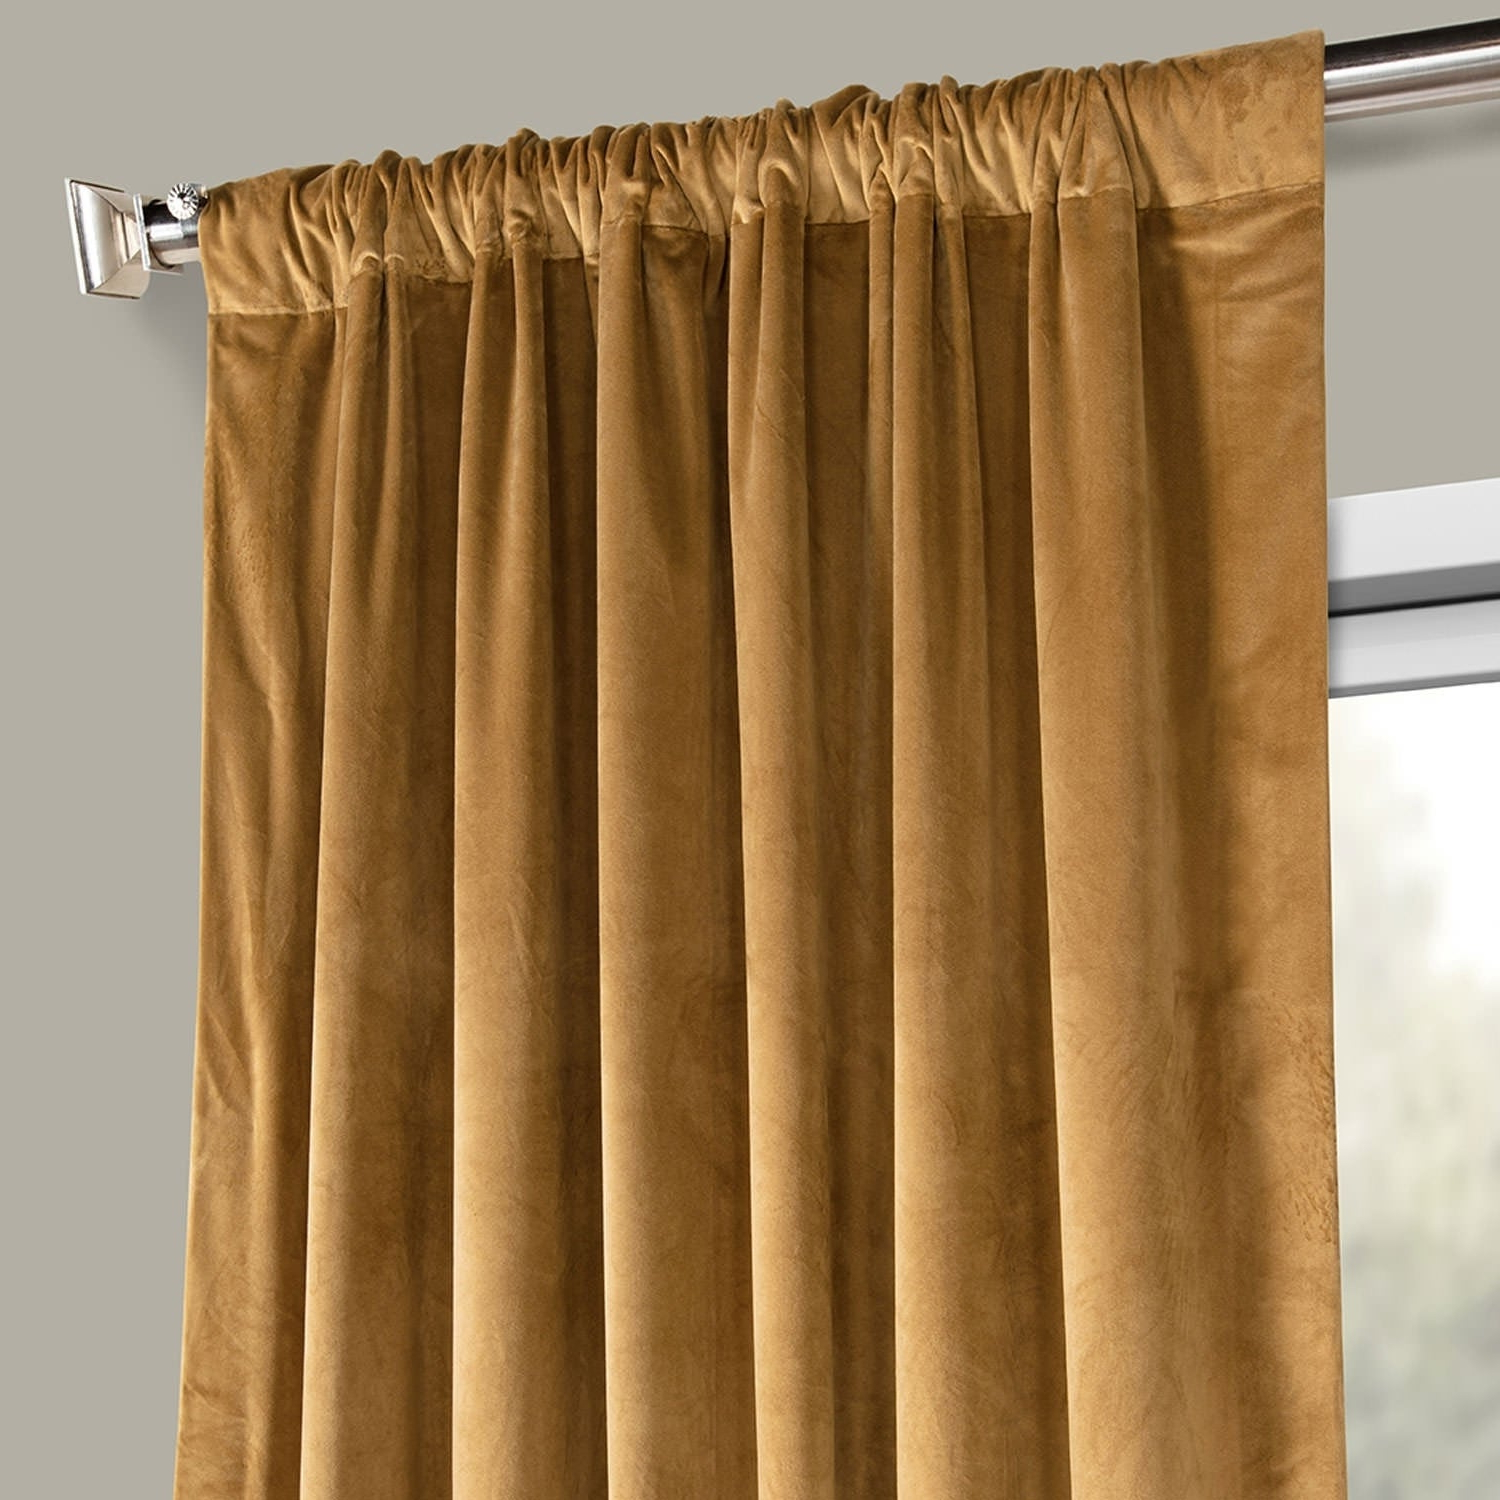 Fashionable Heritage Plush Velvet Curtains Pertaining To Exclusive Fabrics Heritage Plush Velvet Single Curtain Panel (View 9 of 20)